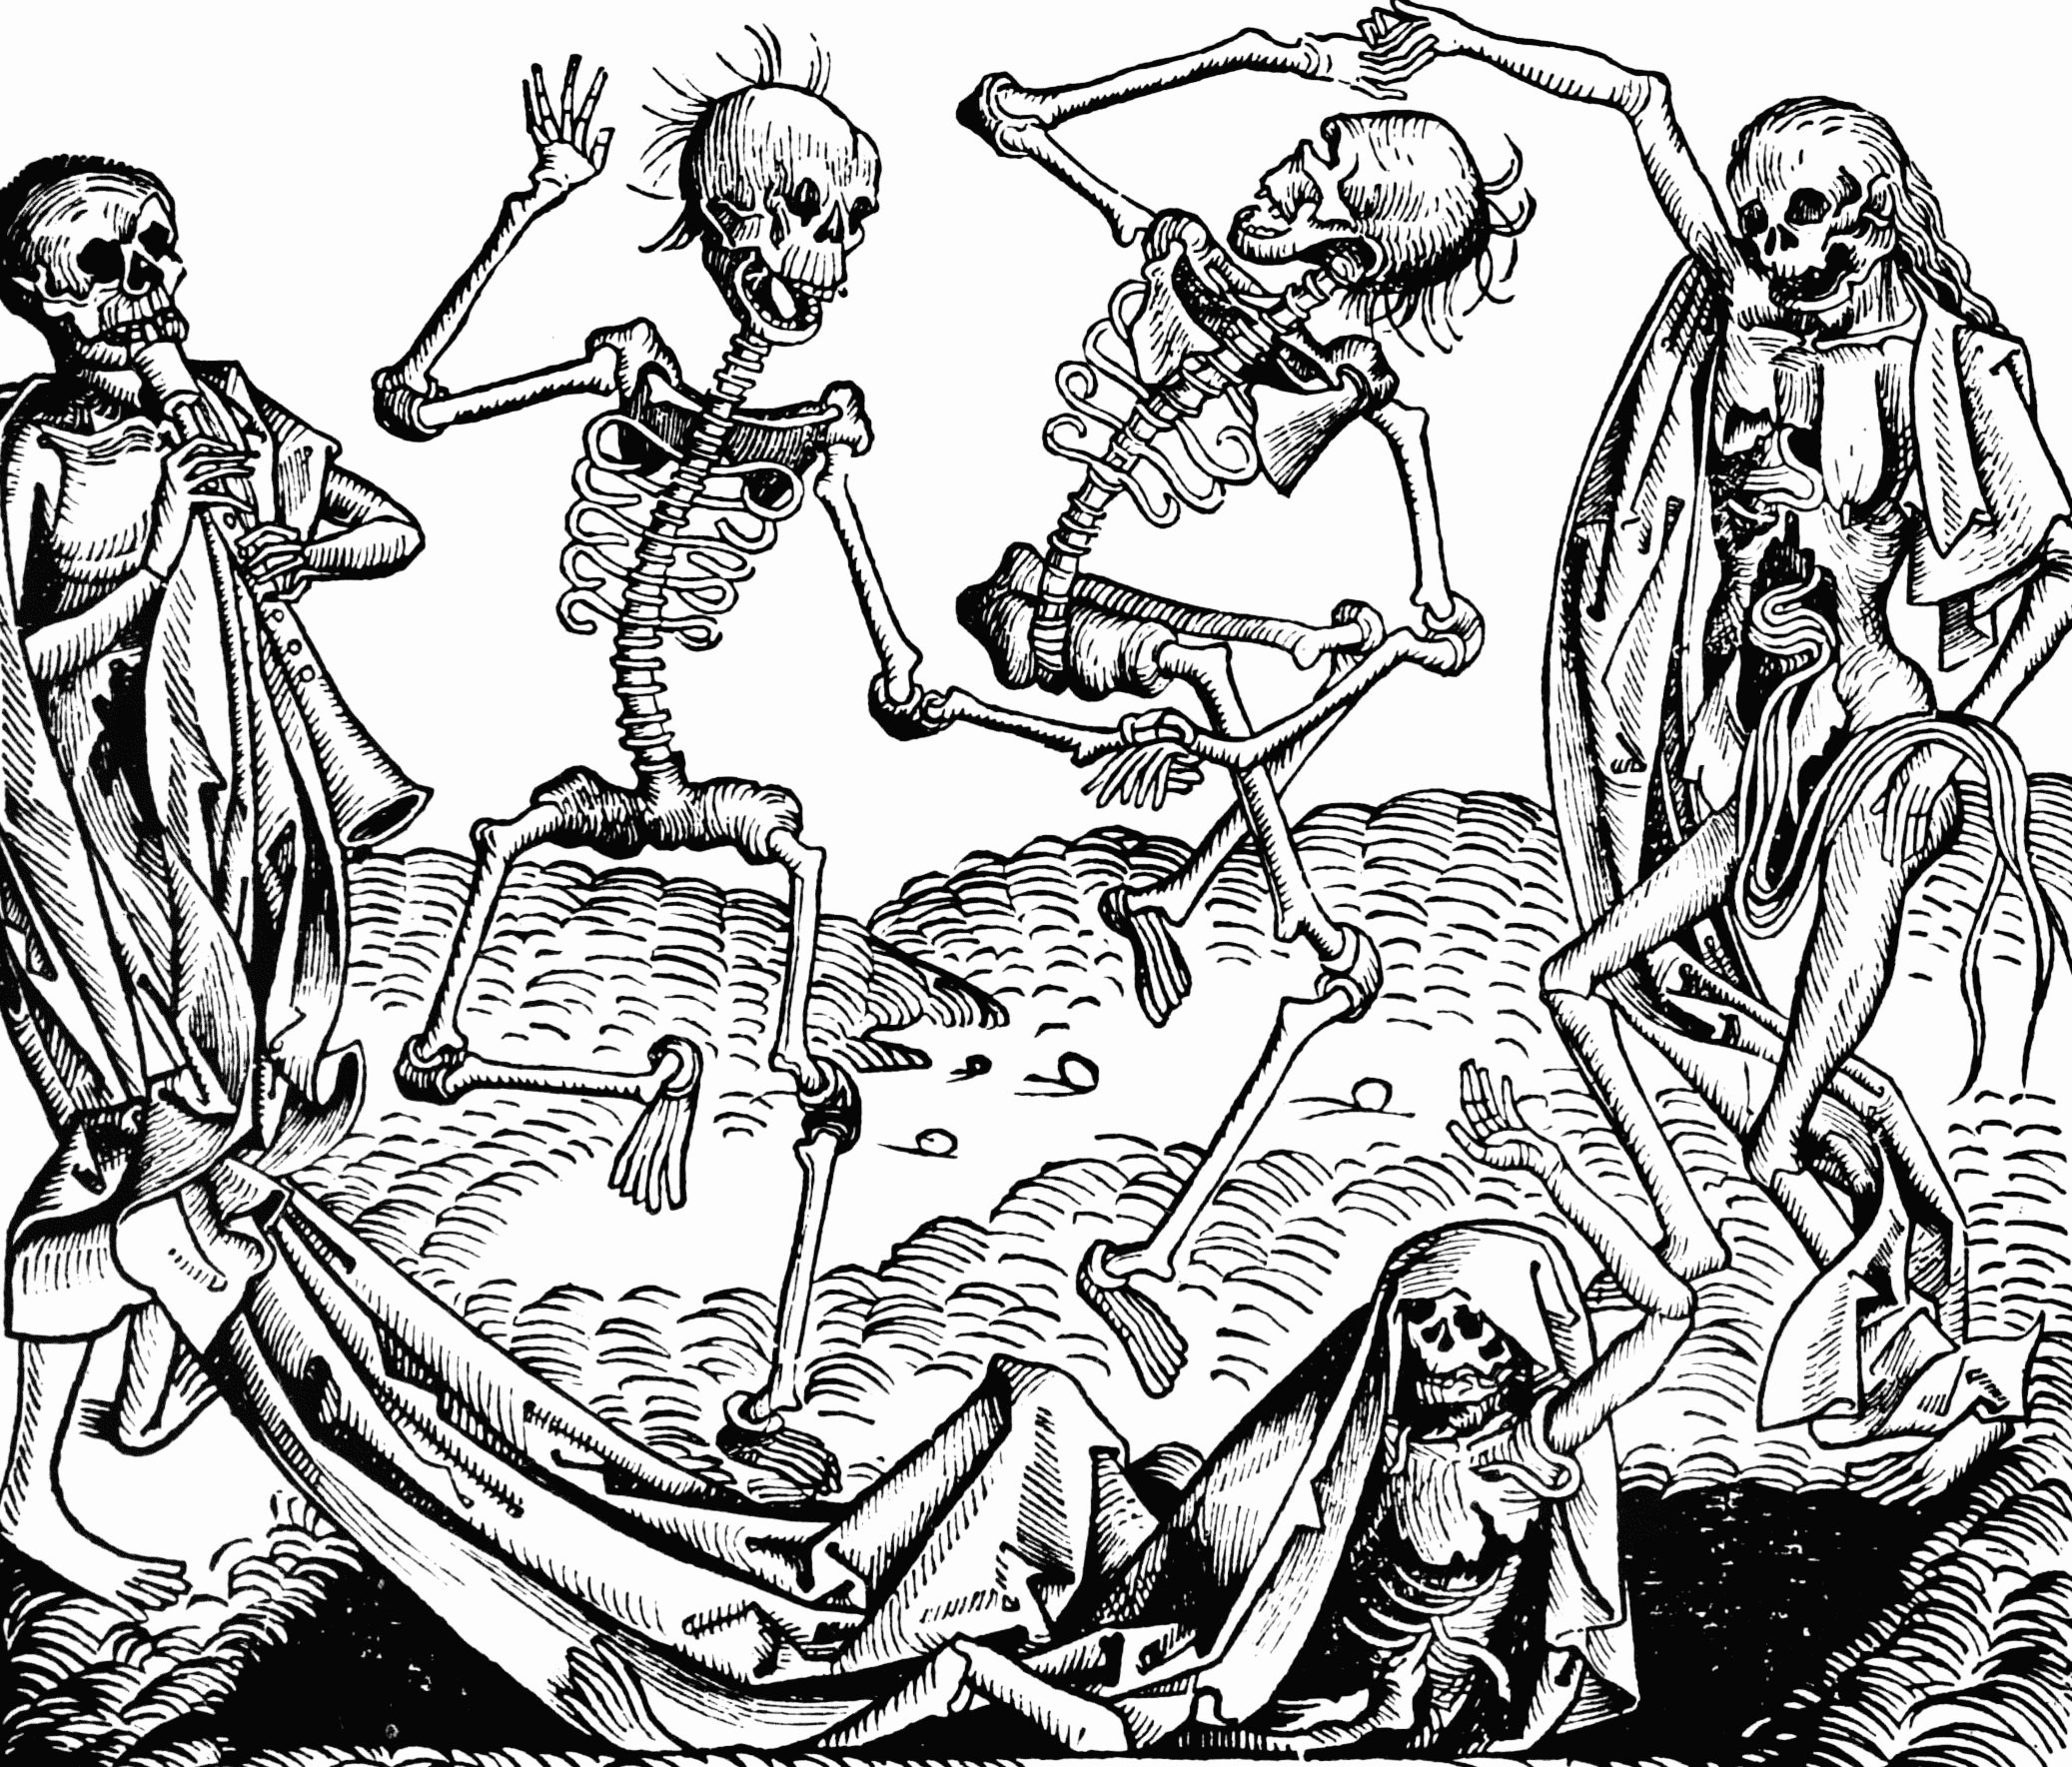 Nuremberg_chronicles_-_Dance_of_Death_(CCLXIIIIv)